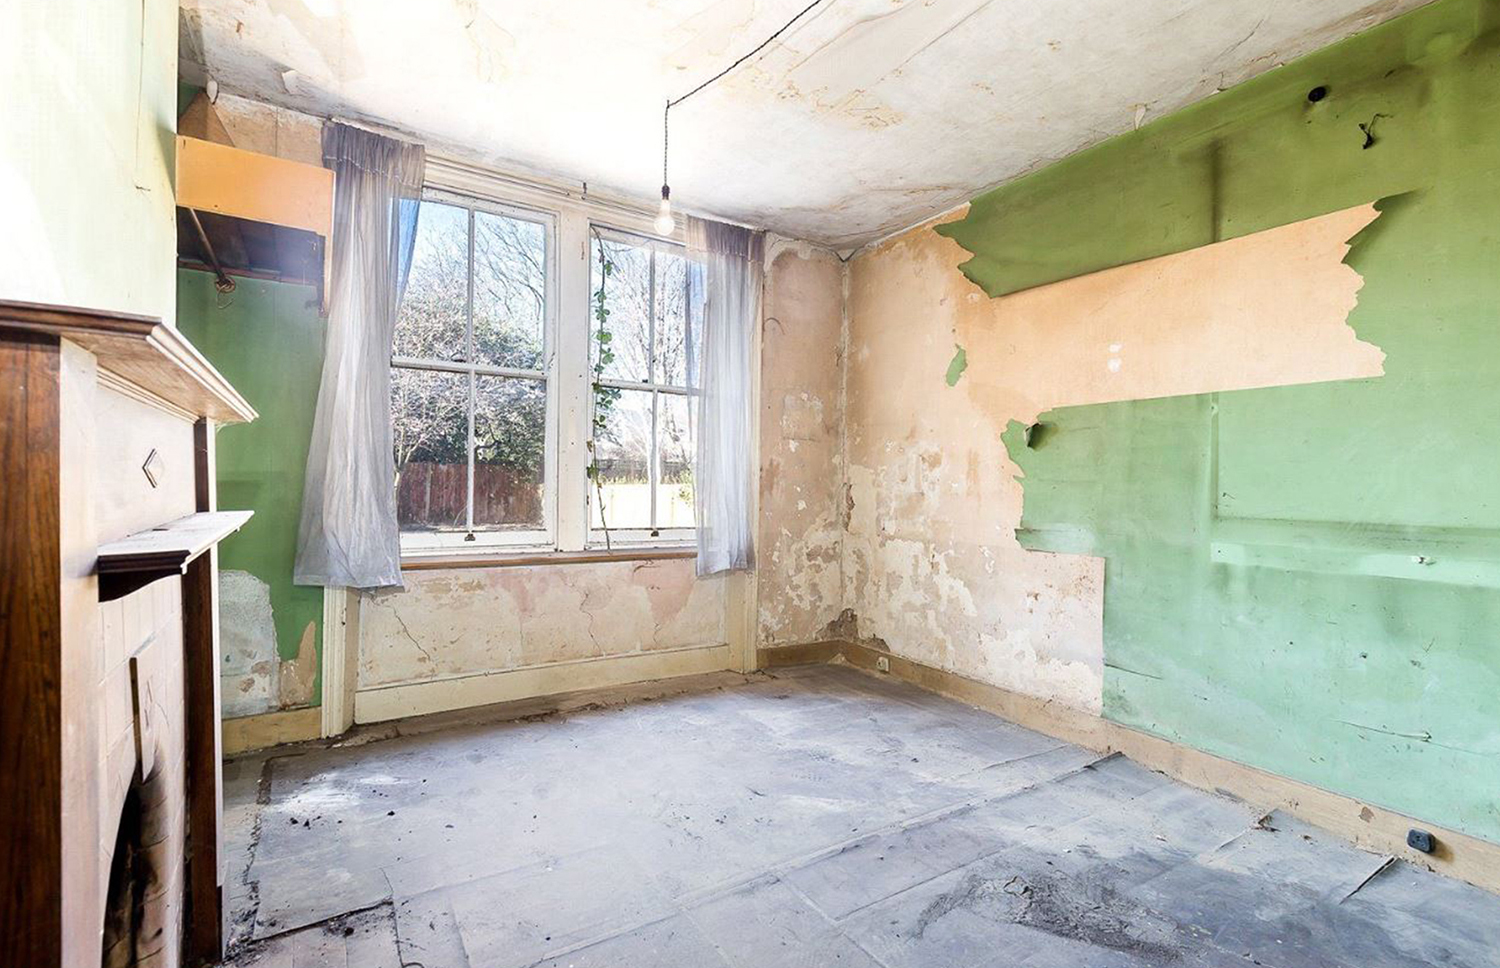 While the residence needs a complete overhaul, it could offer a healthy payback. Image: Savills